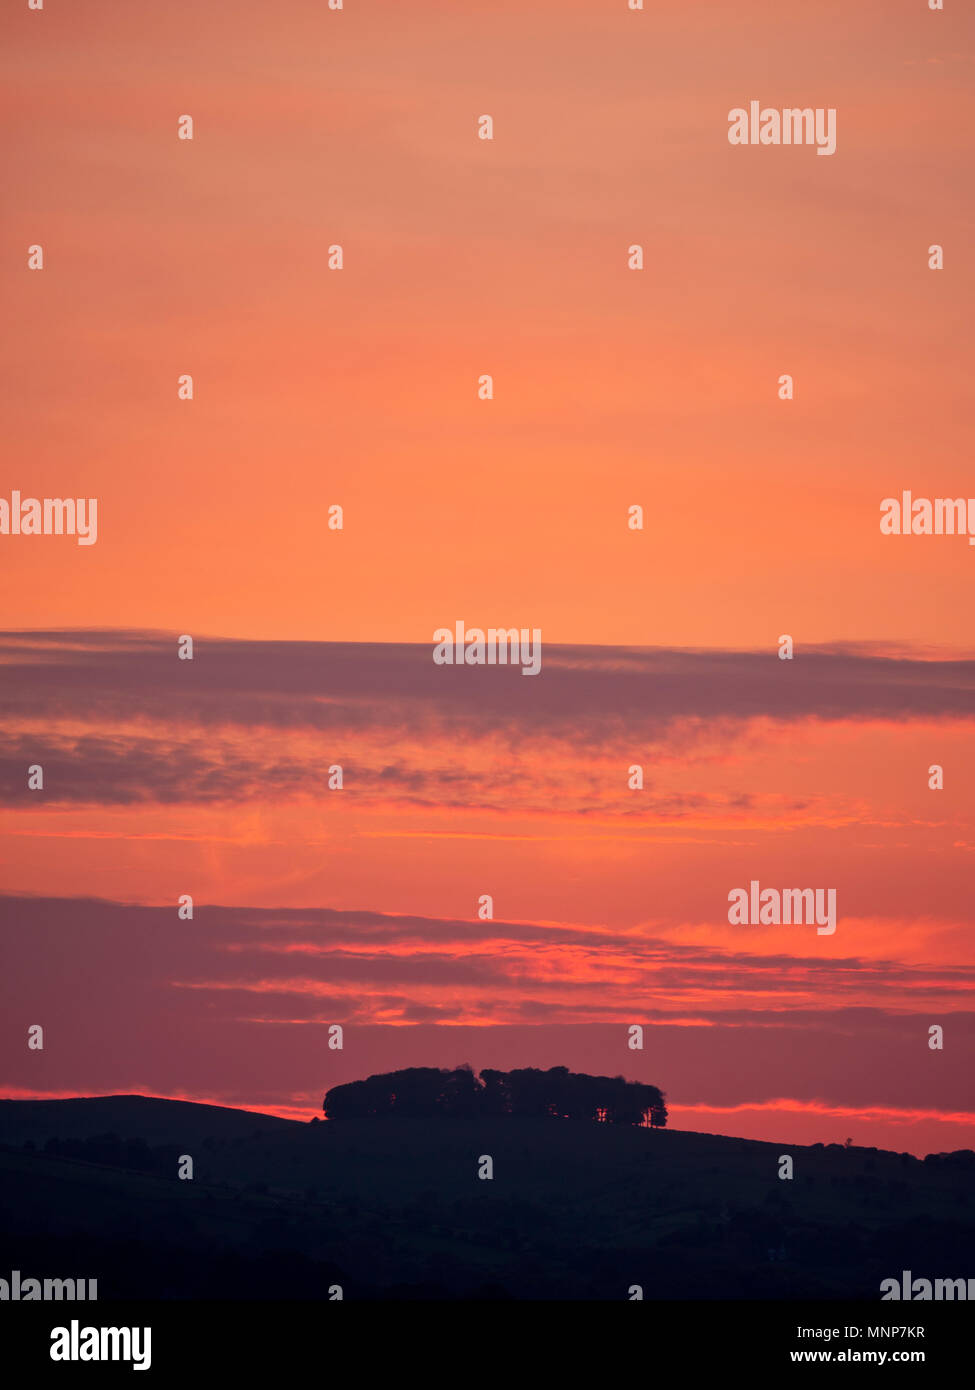 Peak District, Derbyshire, UK. 18th May, 2018. UK Weather: spectacular sunset over the ancient woods Hazleton Clump Cairn near Thorpe taken from Ashbourne Derbyshire, Peak District National Park Credit: Doug Blane/Alamy Live News - Stock Image